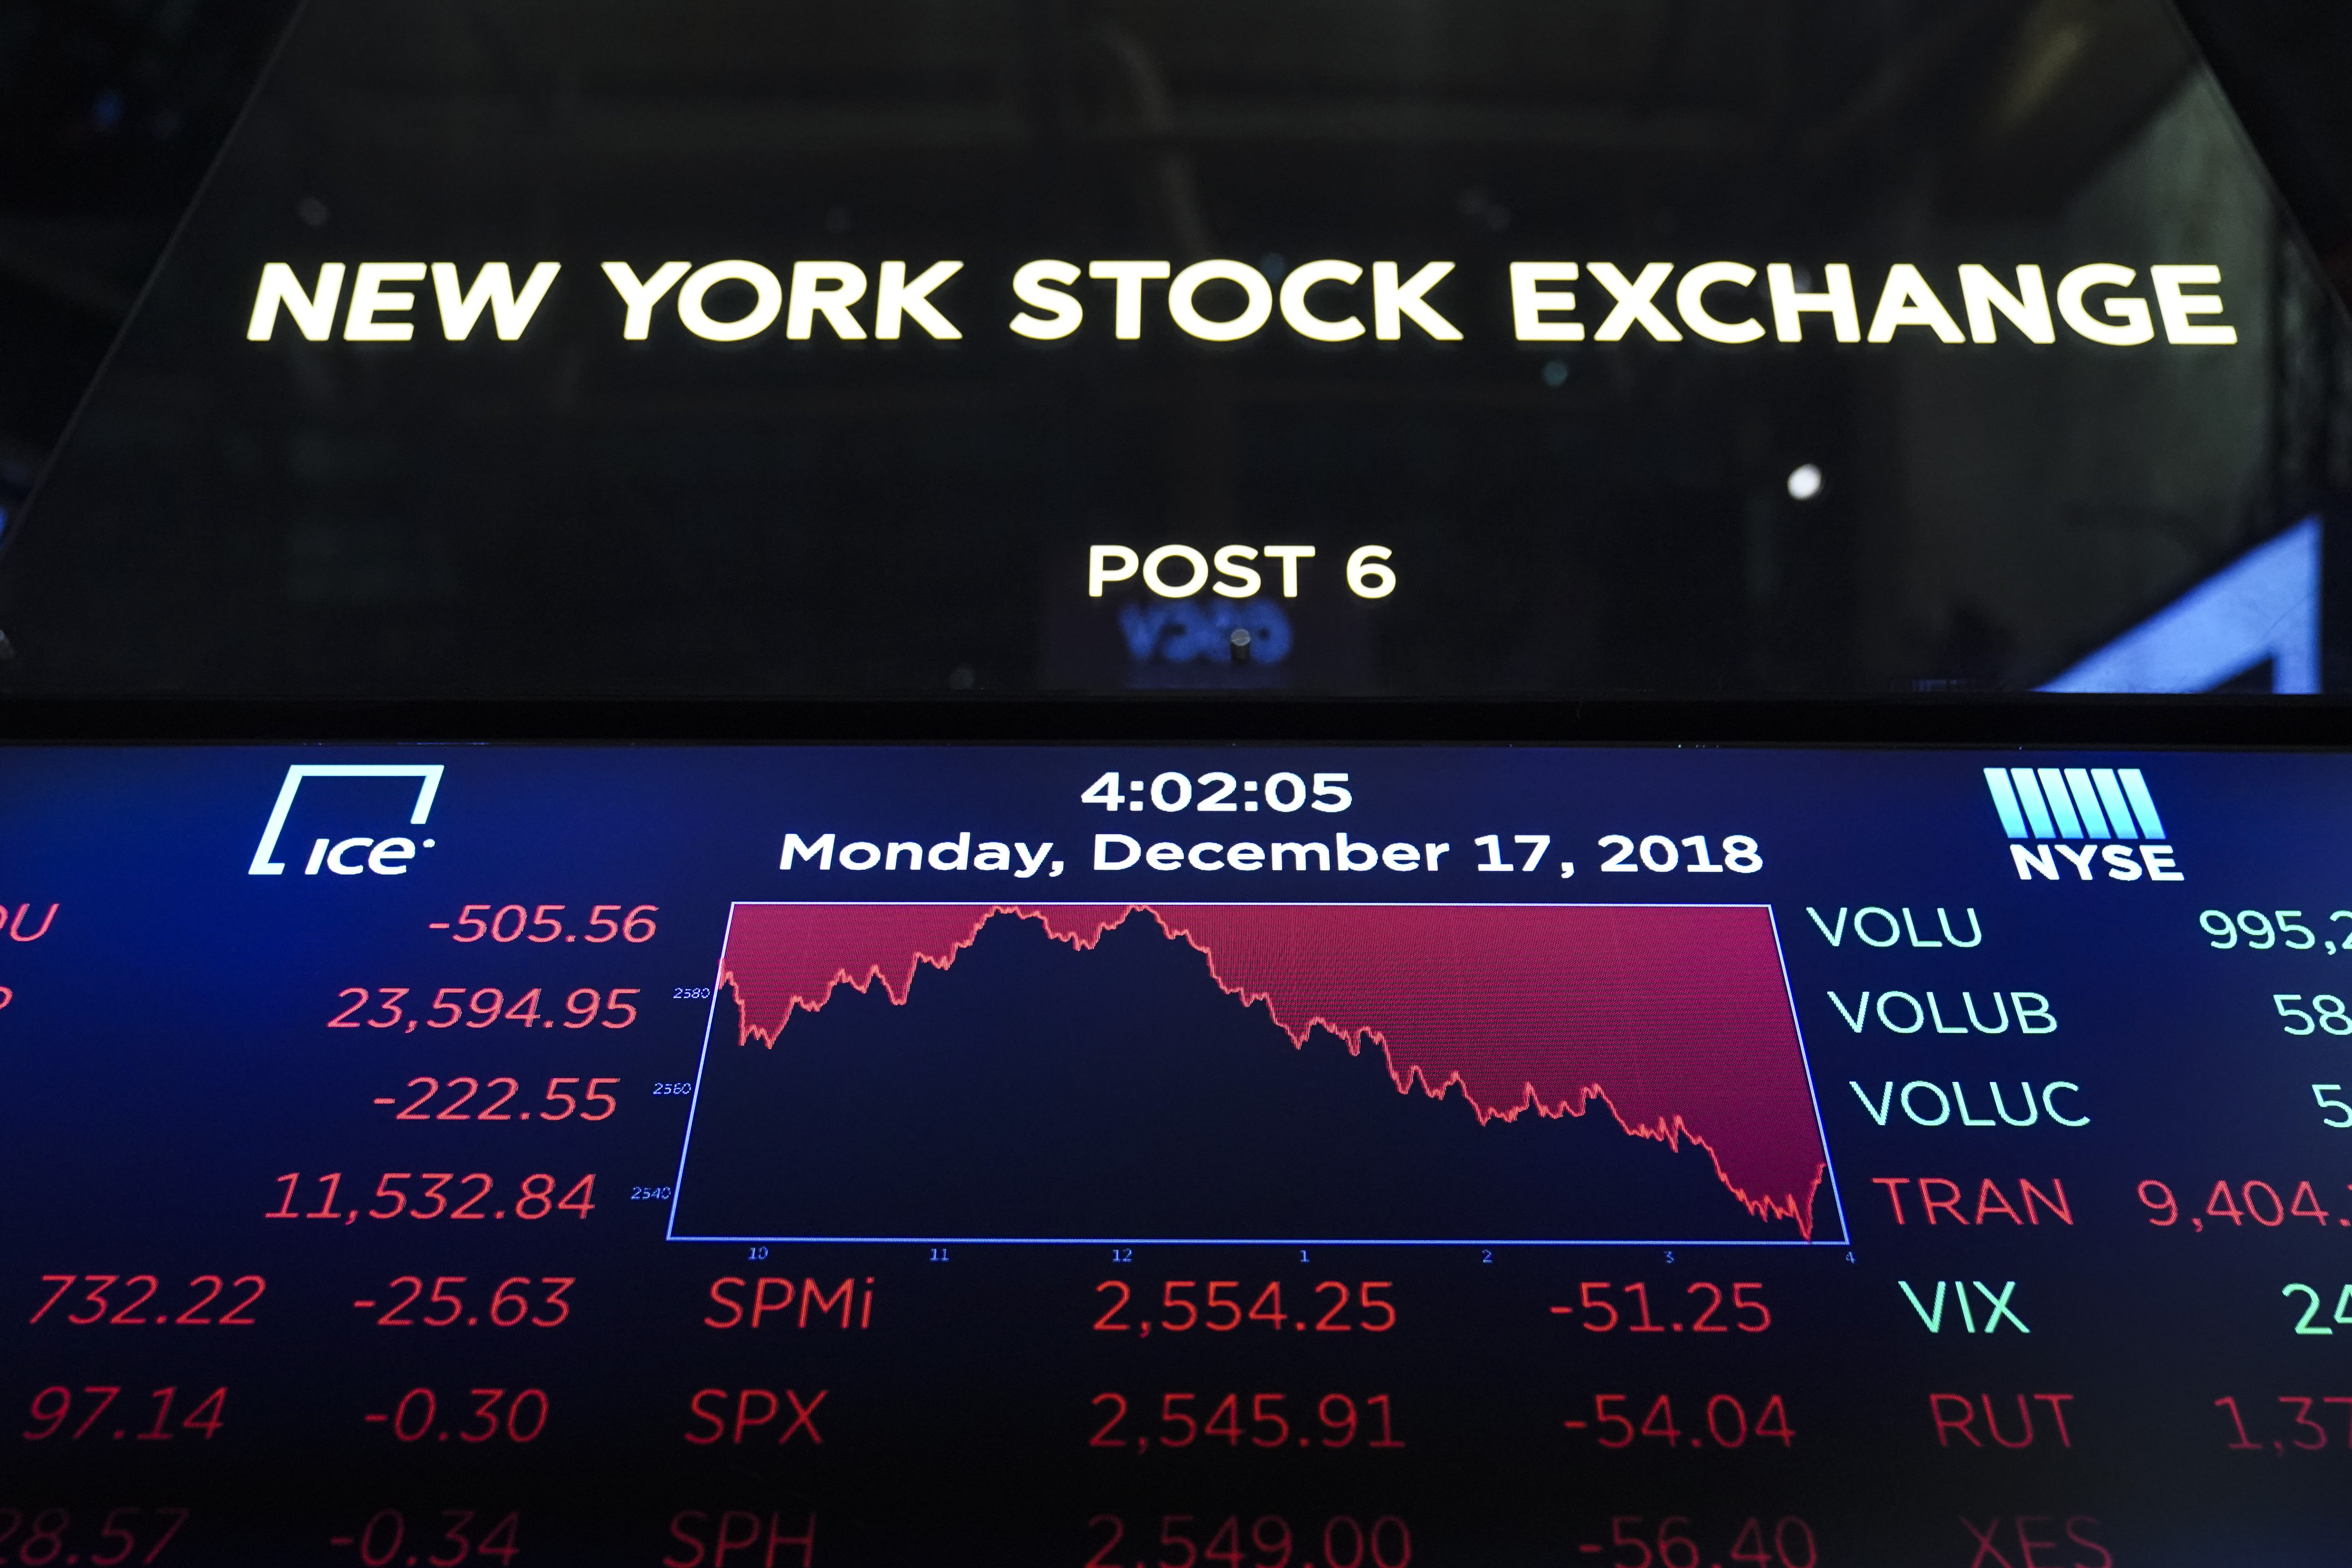 Why the stock market is down lately, explained - Vox